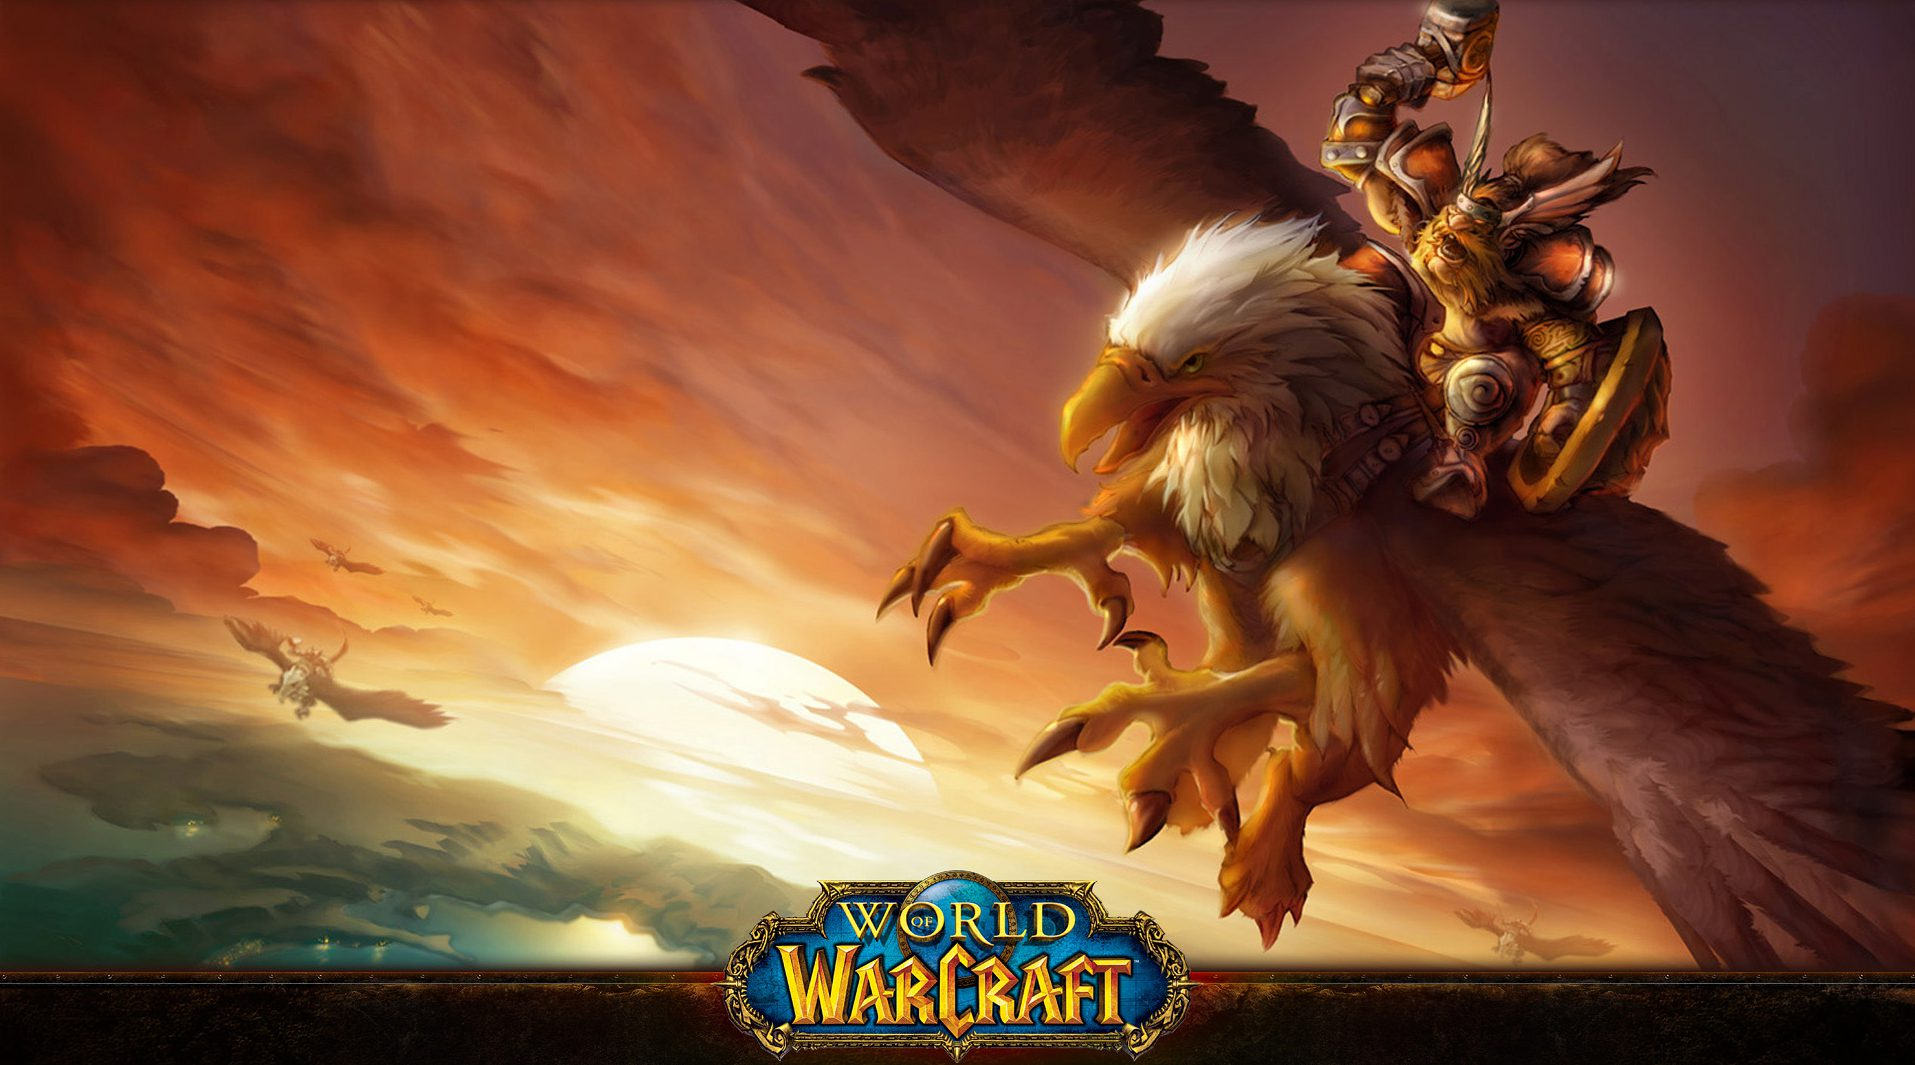 Warcraft The Beginning: What it's like to start playing World of Warcraft in 2016